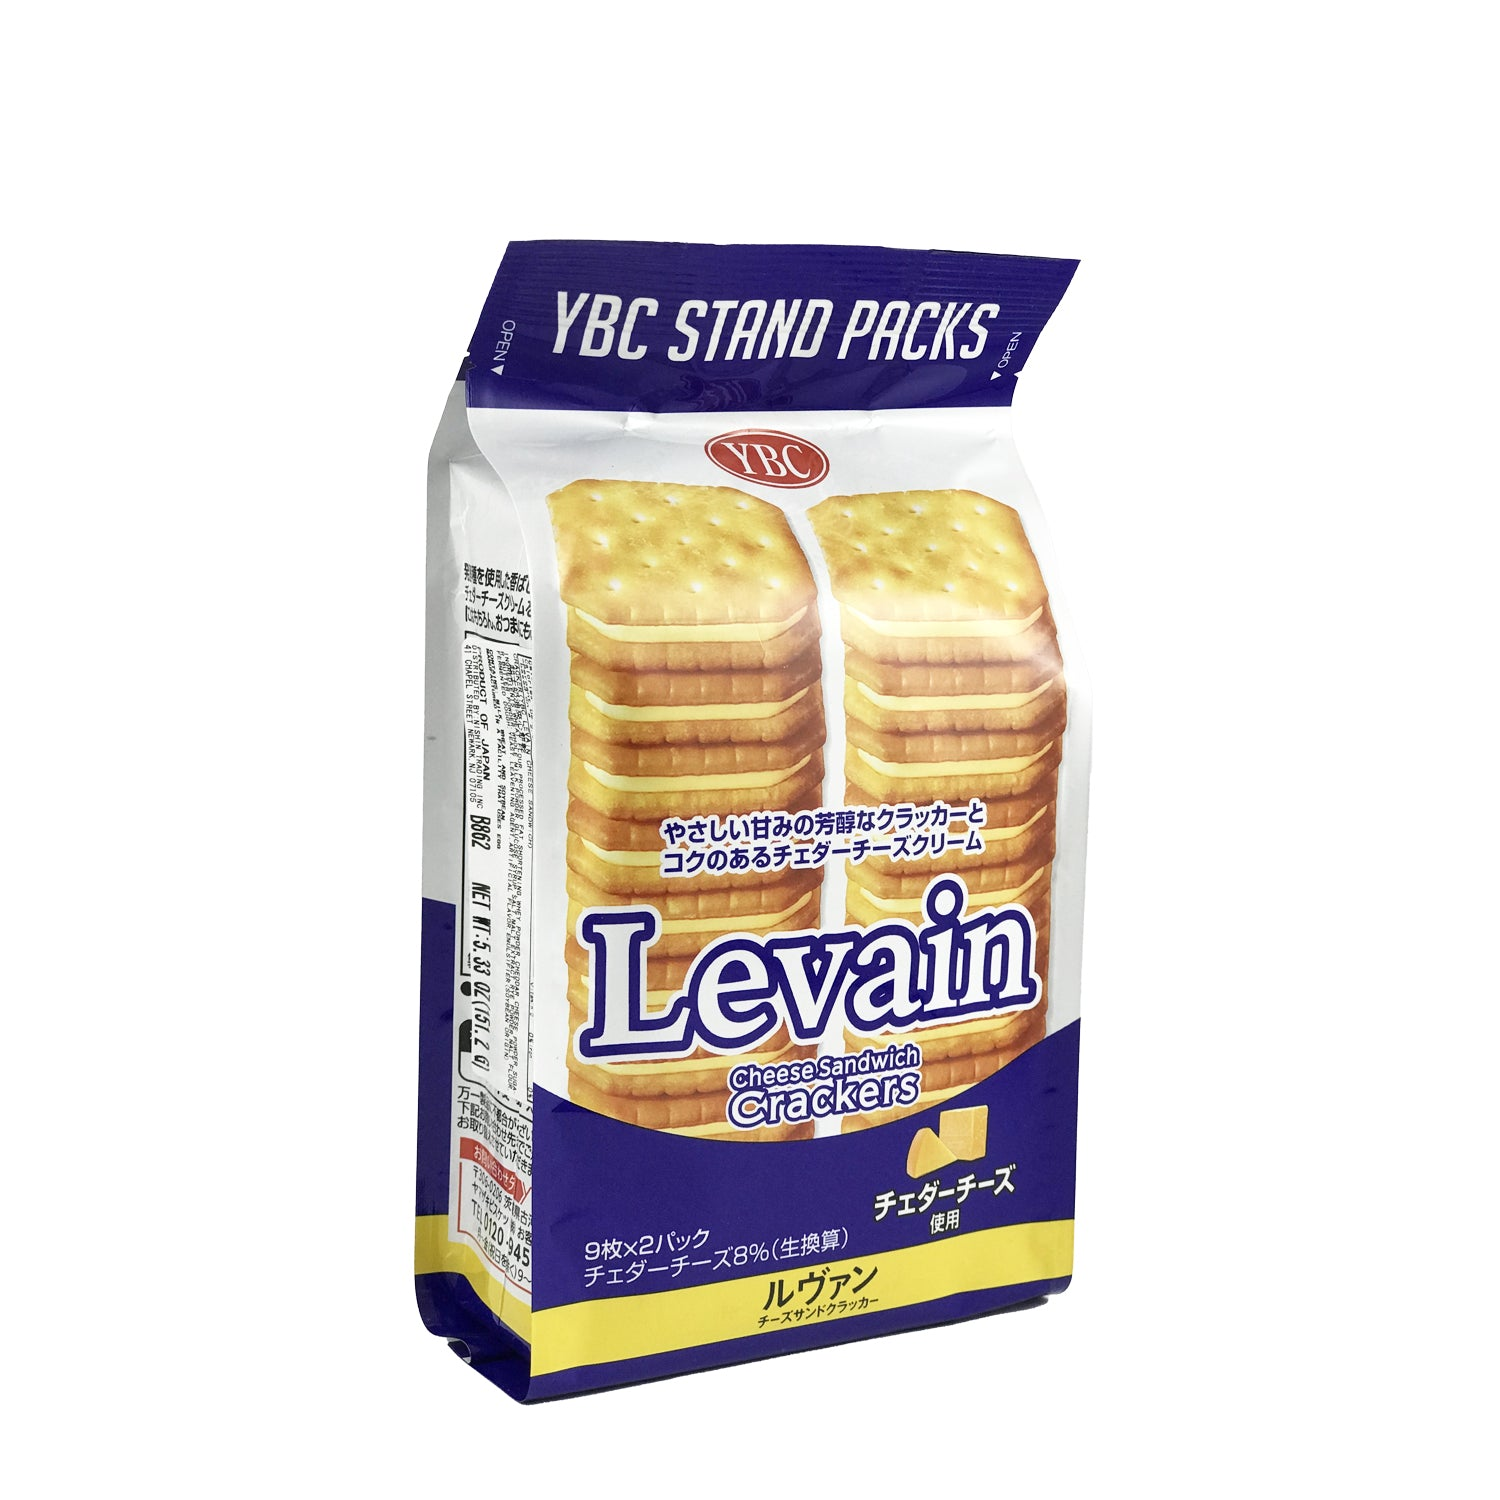 YBC Levain Cheese Sandwich Crackers